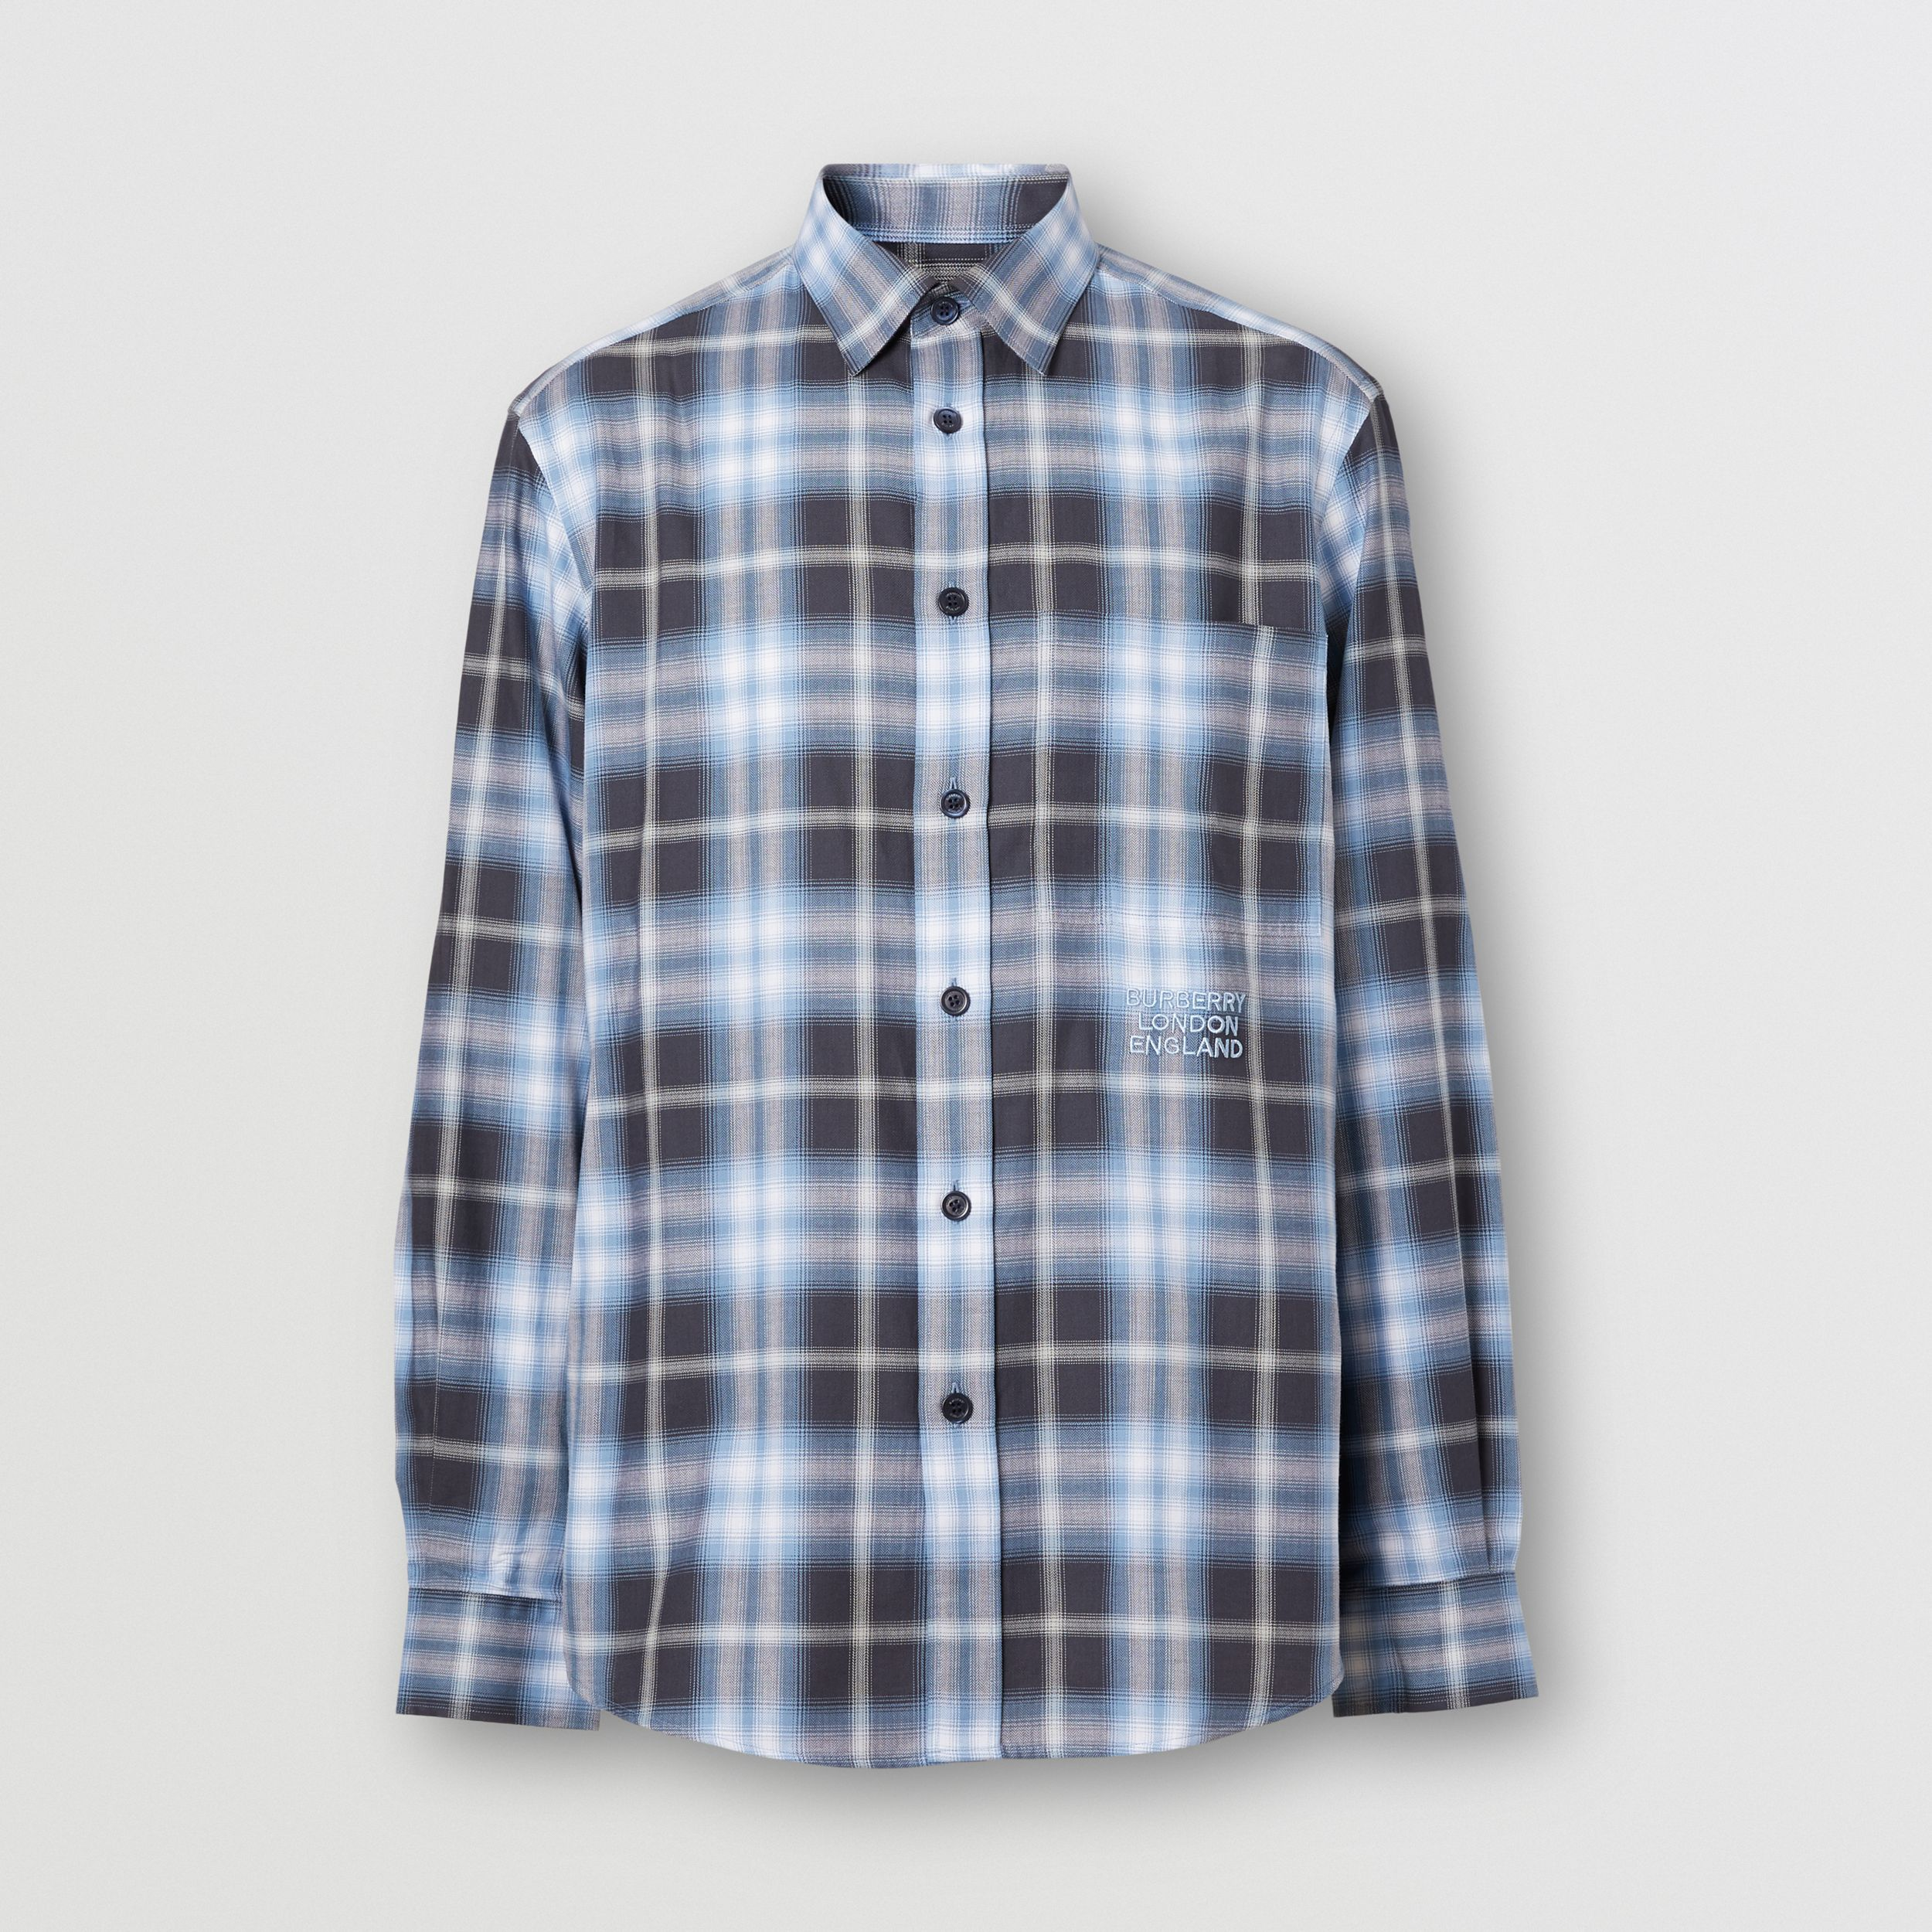 Embroidered Logo Ombré Check Cotton Shirt in Navy - Men | Burberry - 4